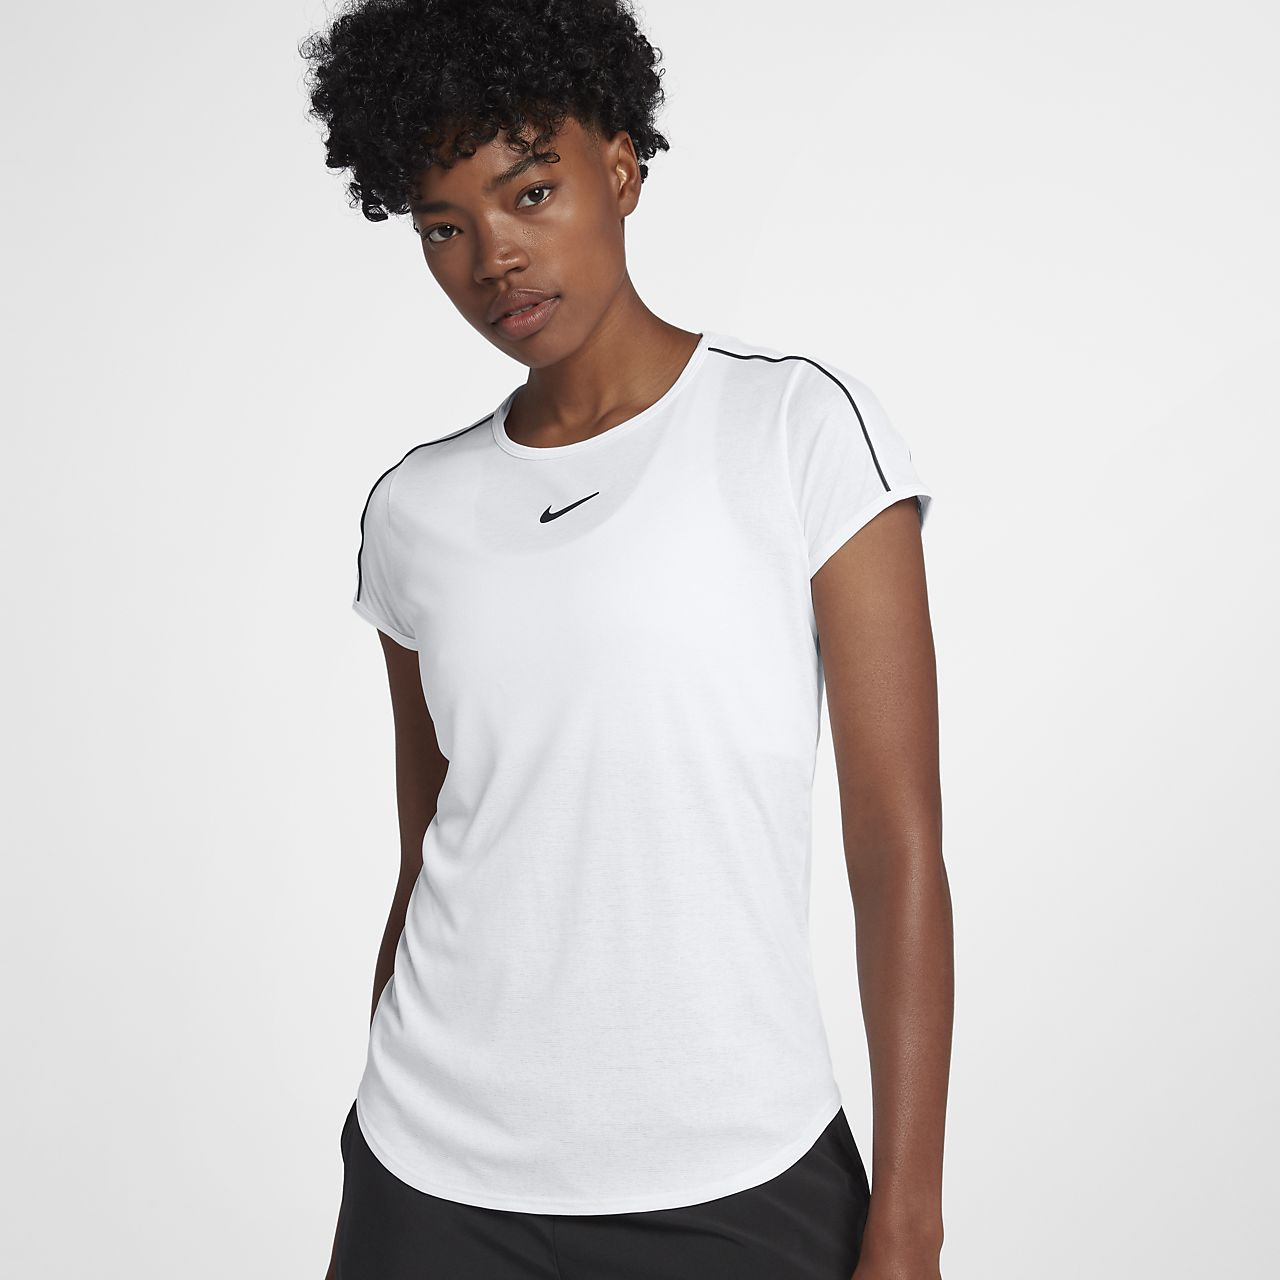 NikeCourt Dri-FIT Women's Tennis Top